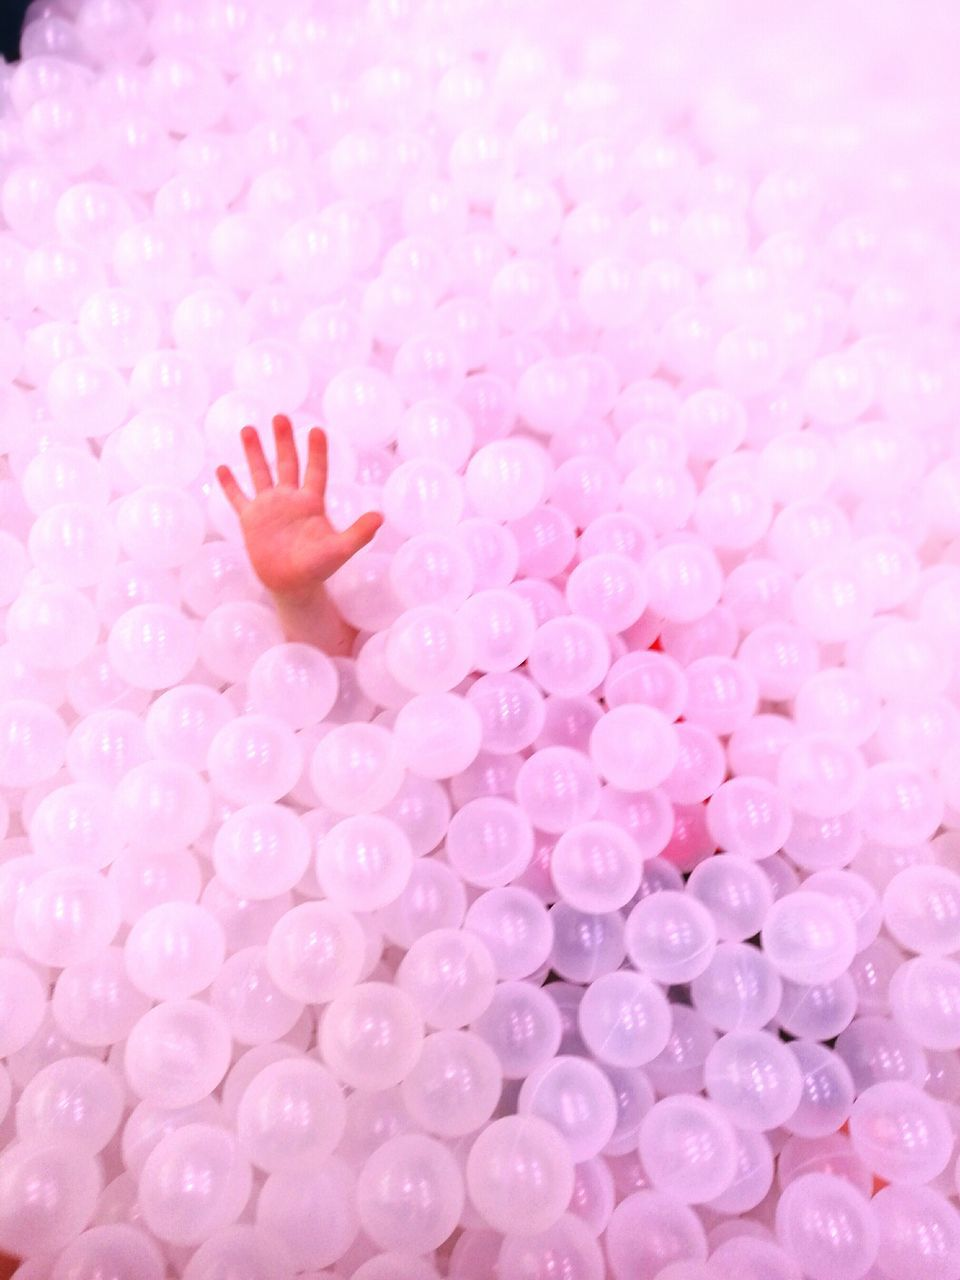 pink color, human body part, human hand, one person, close-up, hand, body part, indoors, childhood, real people, abundance, large group of objects, water, child, toy, full frame, nature, lifestyles, finger